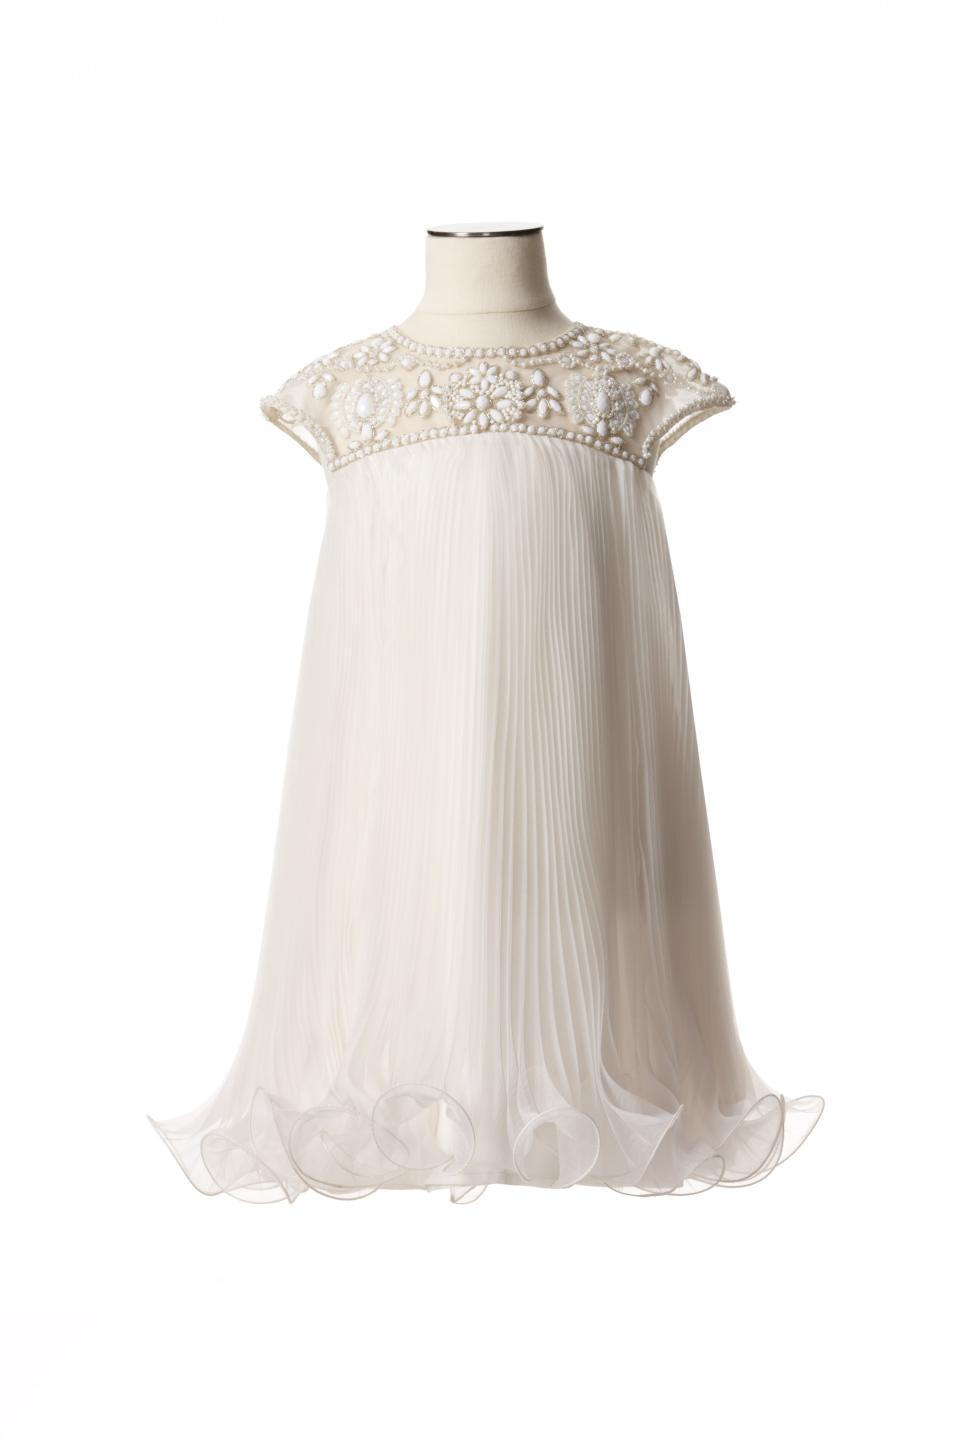 <b>Marchesa for Target + Neiman Marcus Holiday Collection Girl's Beaded Dress</b><br><br> Price: $99.99<br><br> Size: XS – L<br><br>